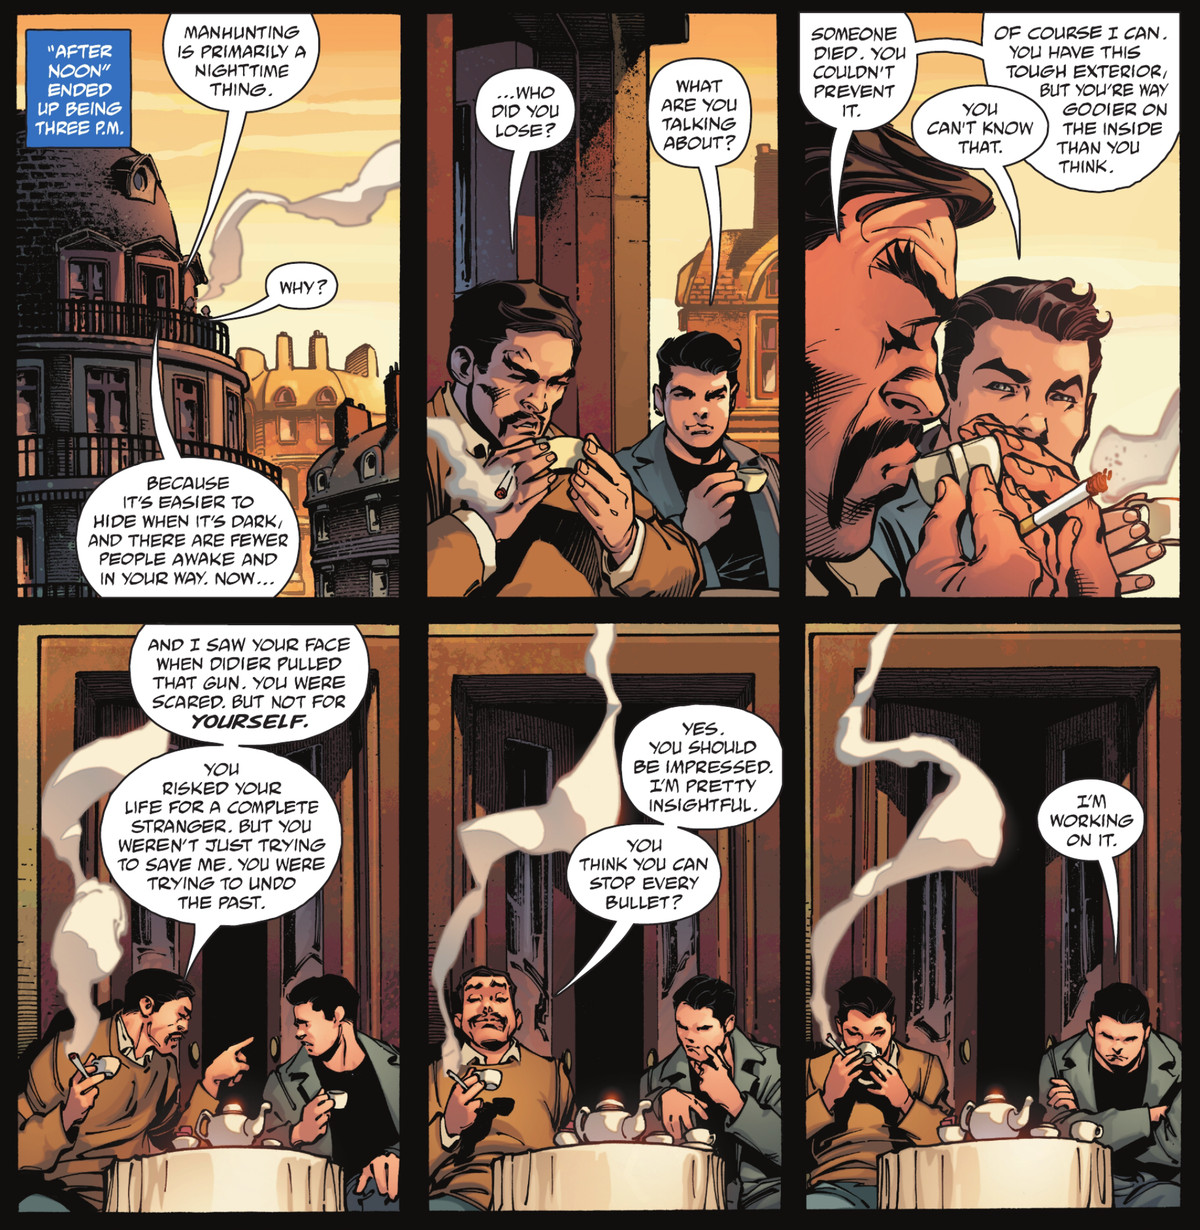 """Henri Ducard tells a young Bruce Wayne that he can tell he's trying to make up for some tragedy by learning his trade. """"You think you can stop every bullet?"""" he asks. Bruce crosses his arms grumpily. """"Working on it."""" From Batman: The Detective #3, (2021)."""